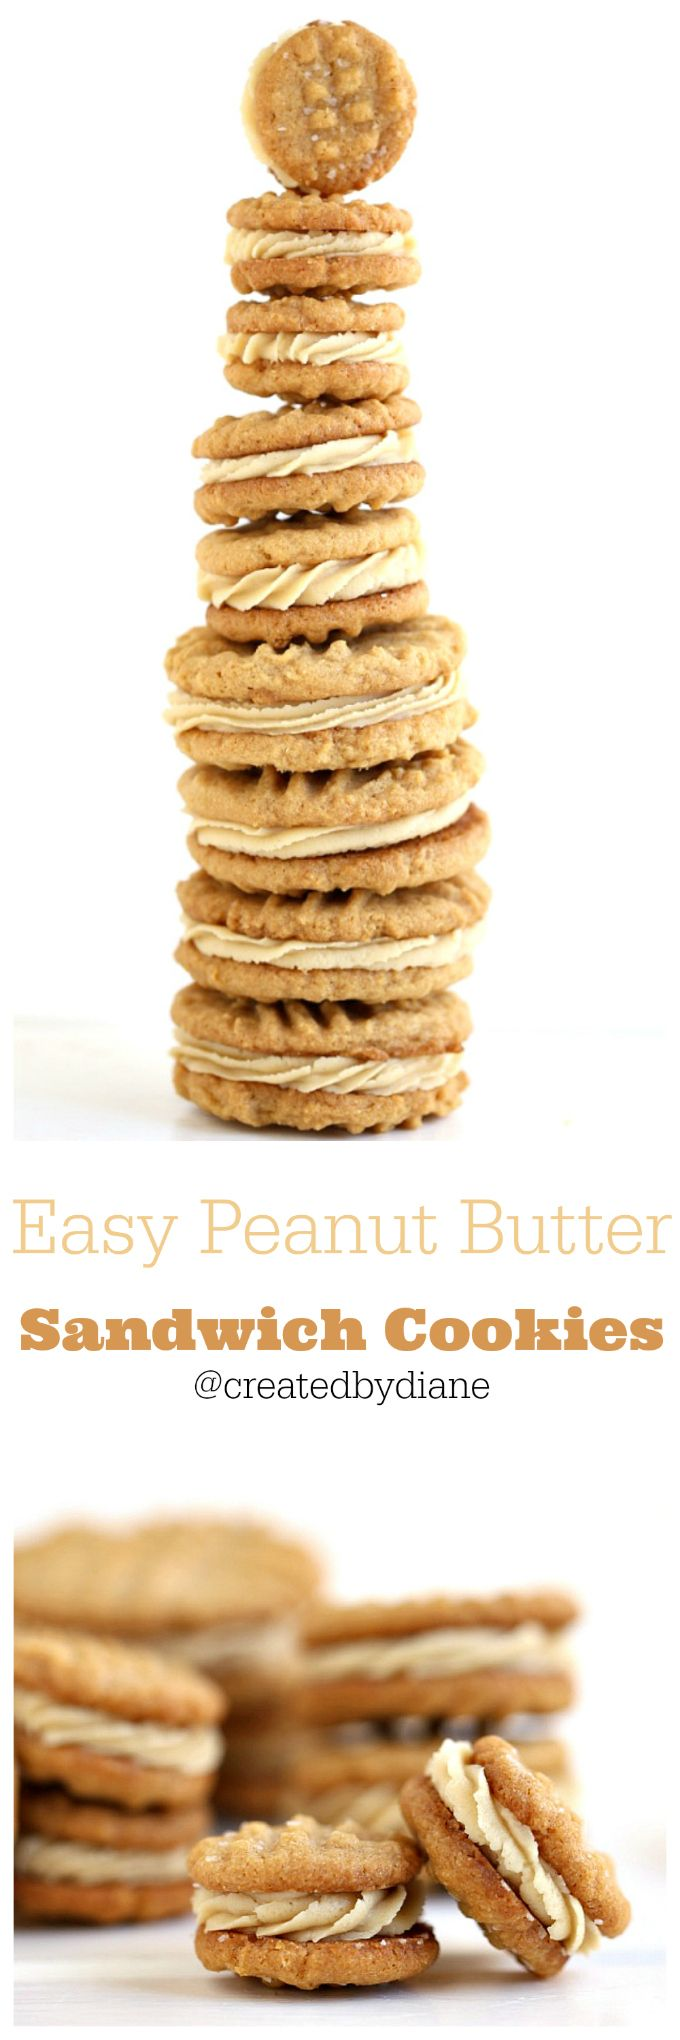 3 ingredient peanut butter cookies filled with peanut butter frosting @creaetedbydiane